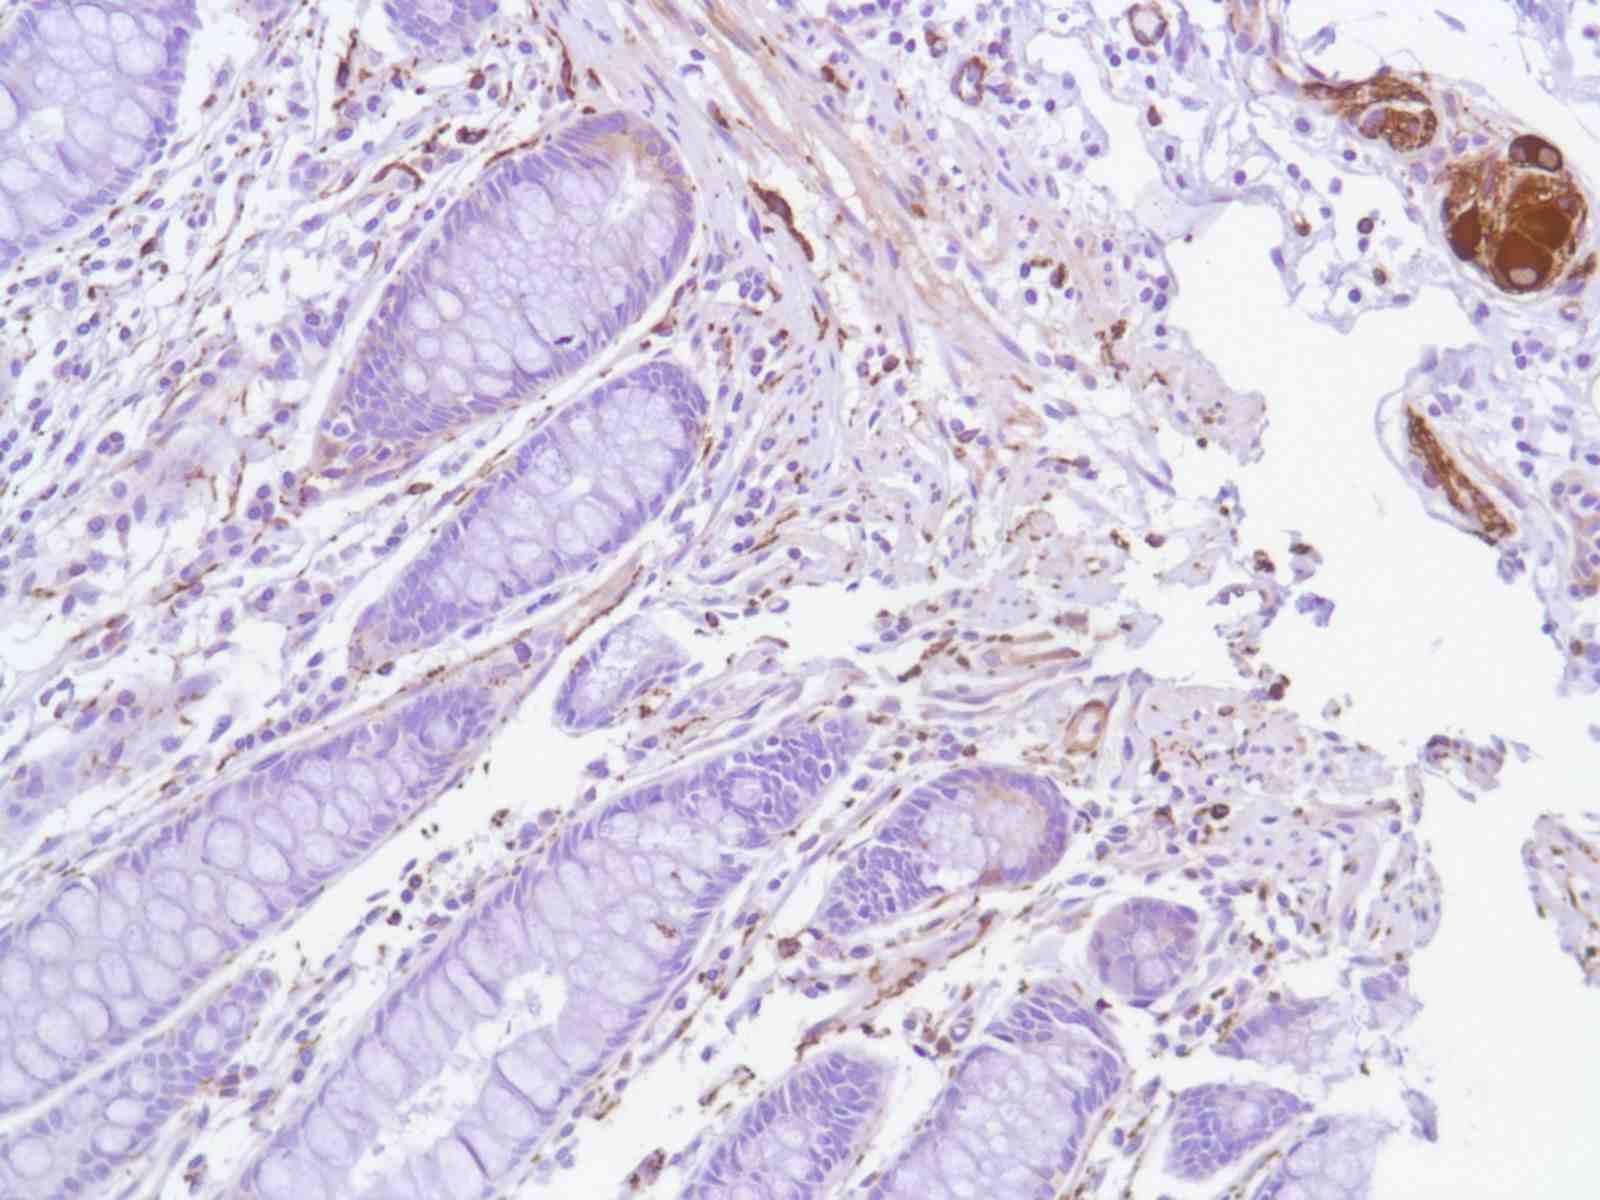 Human Colon stained with anti-Tau antibody